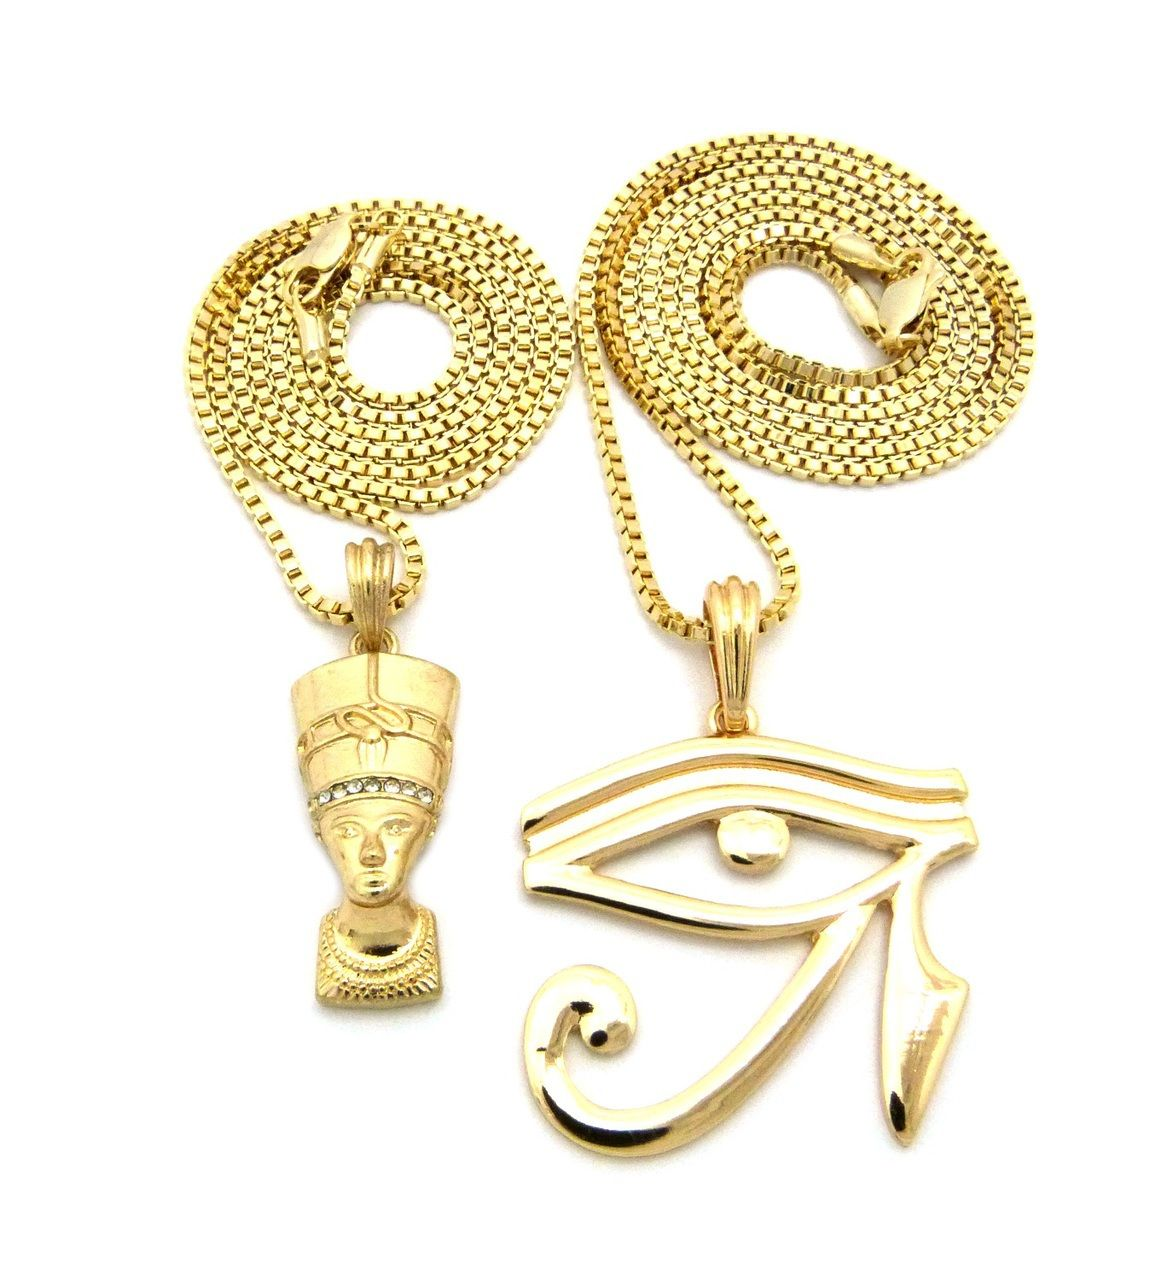 Egyptian queen nefertiti pendant eye of ra bling chain necklace egyptian queen nefertiti pendant eye of ra bling chain necklace mozeypictures Choice Image